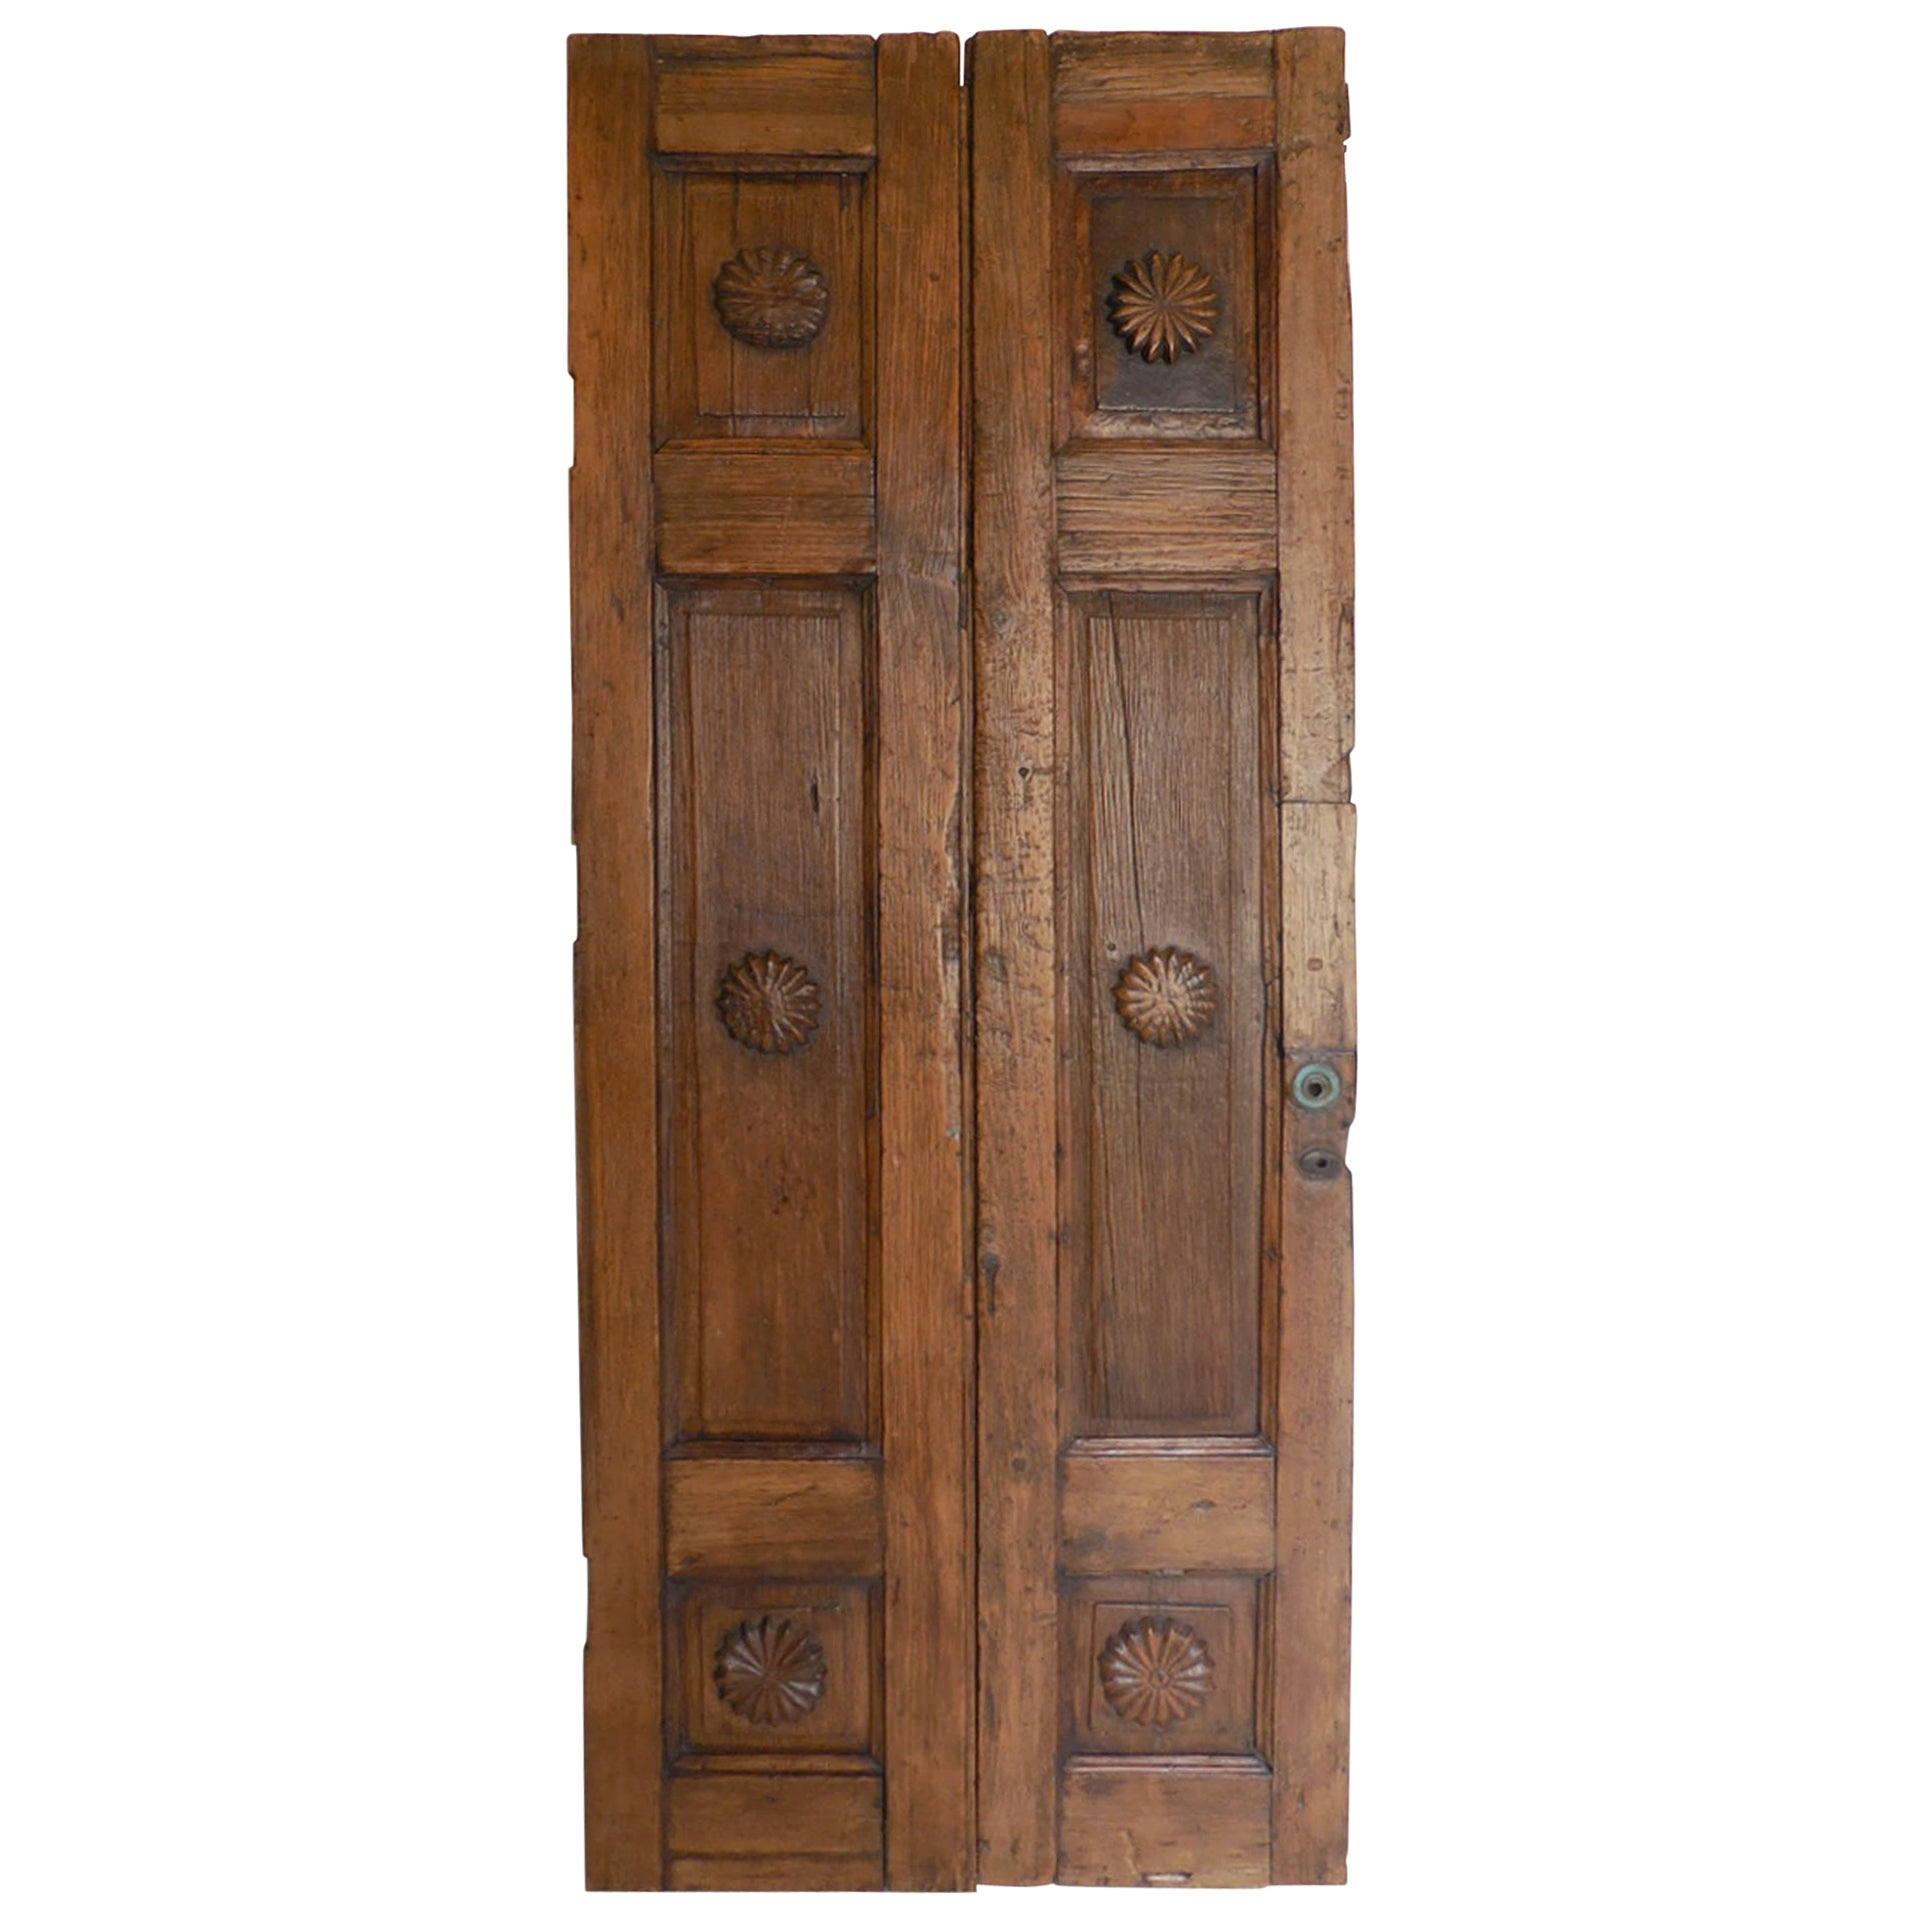 Spanish Colonial Pair of Doors or Screen